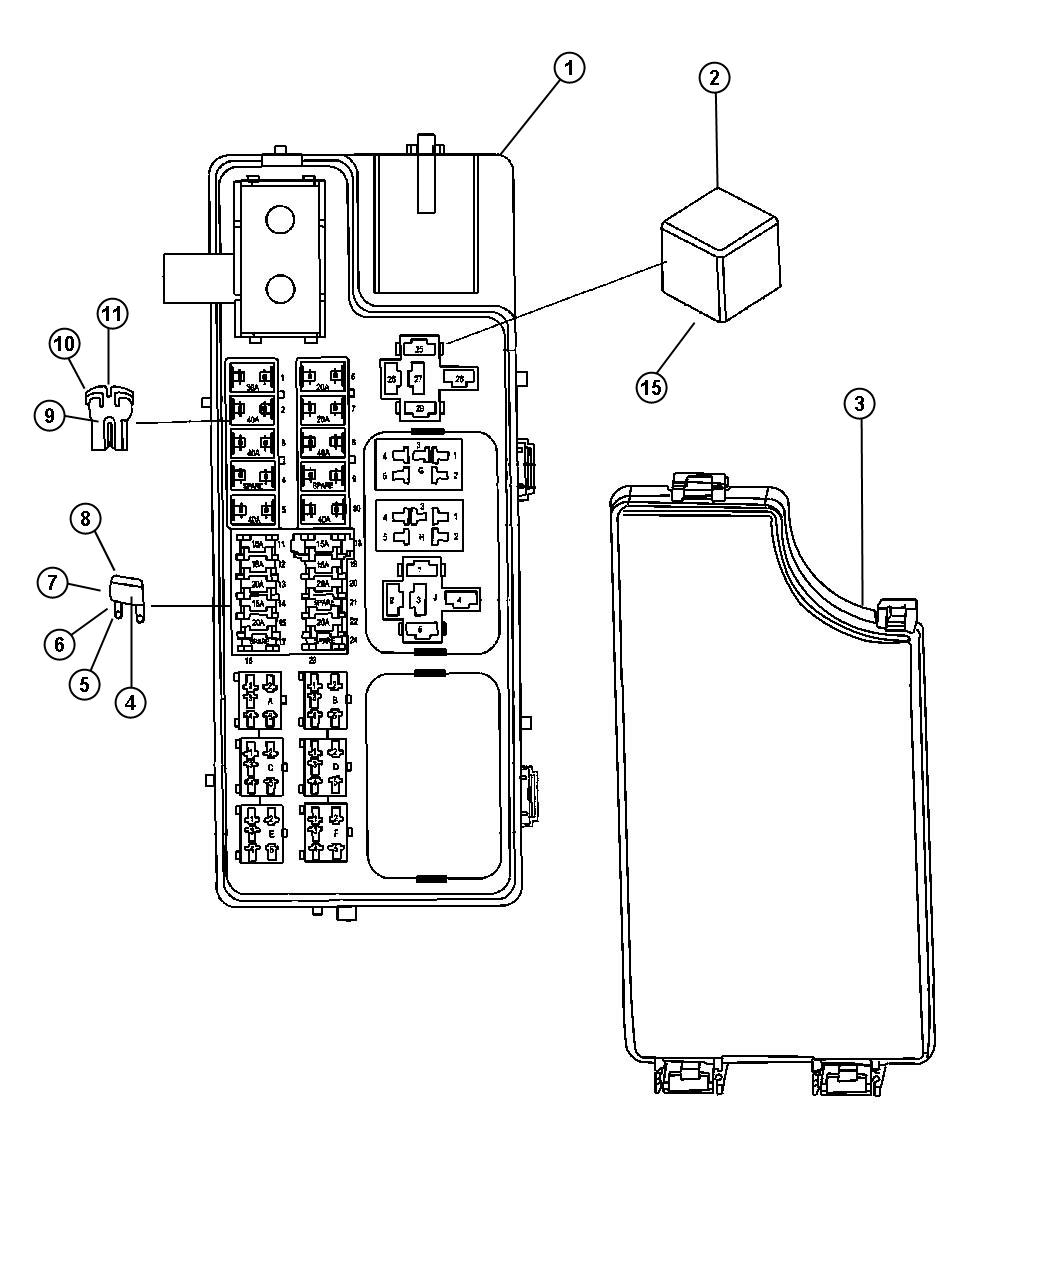 2005 F250 Fuse Box Diagram